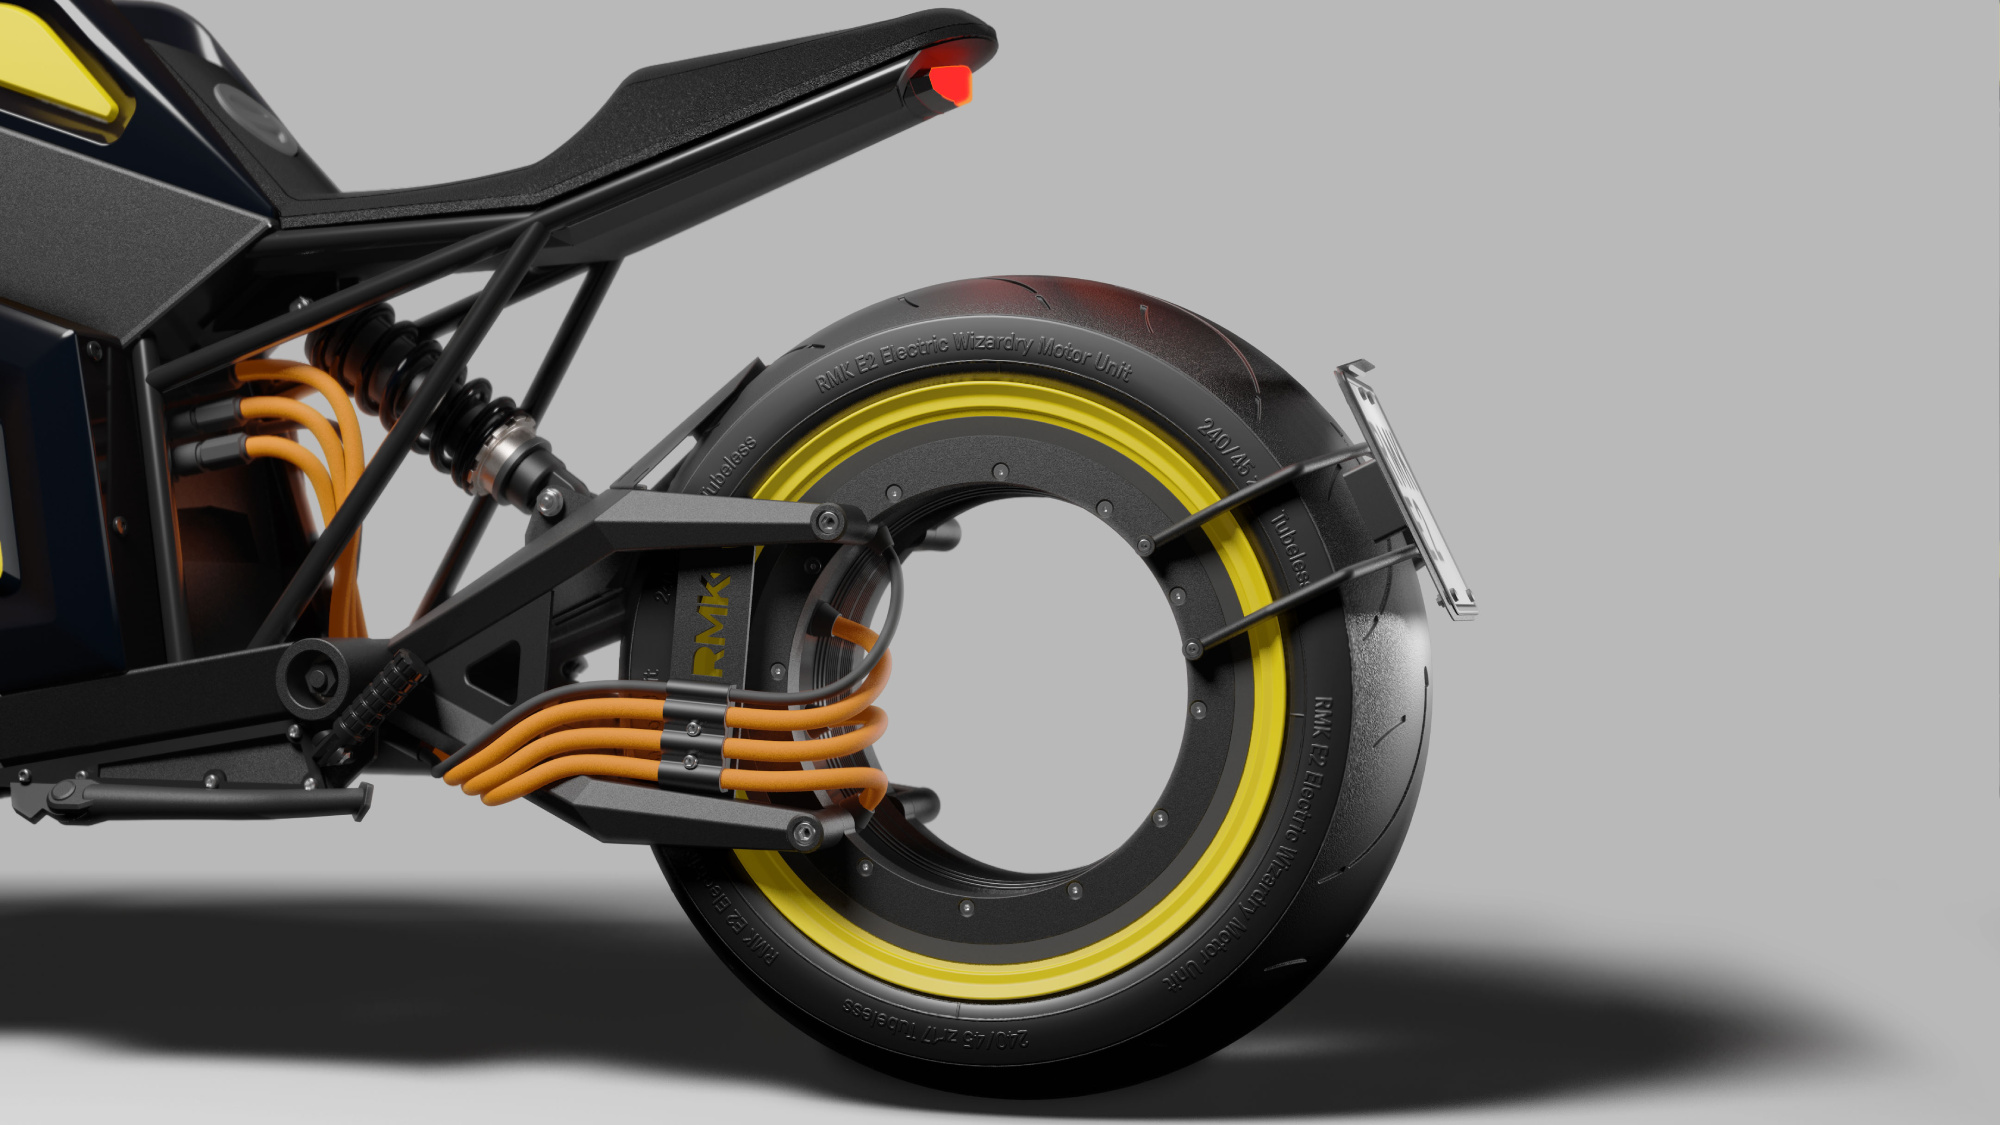 The Finnish electric motorbike 'E2' sports a hubless design that would look at home in any sci-fi movie.